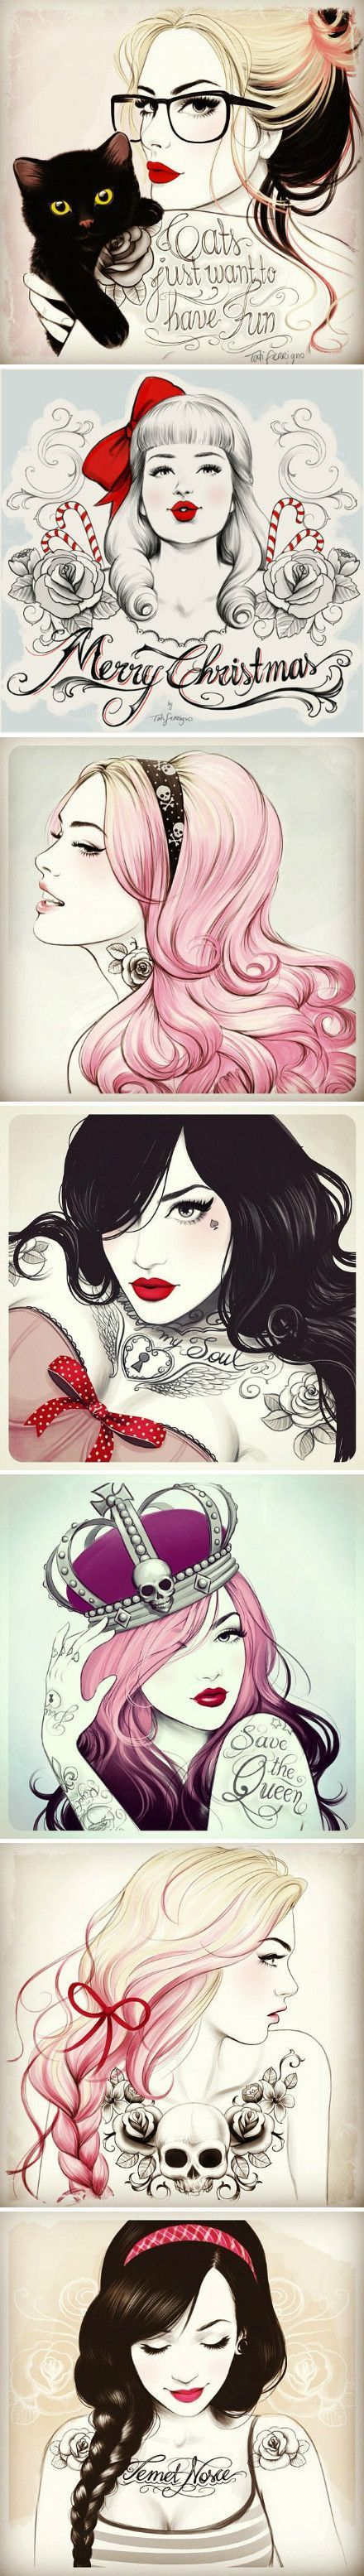 Girls Tattooslove the last one with the rose on shoulders Cc